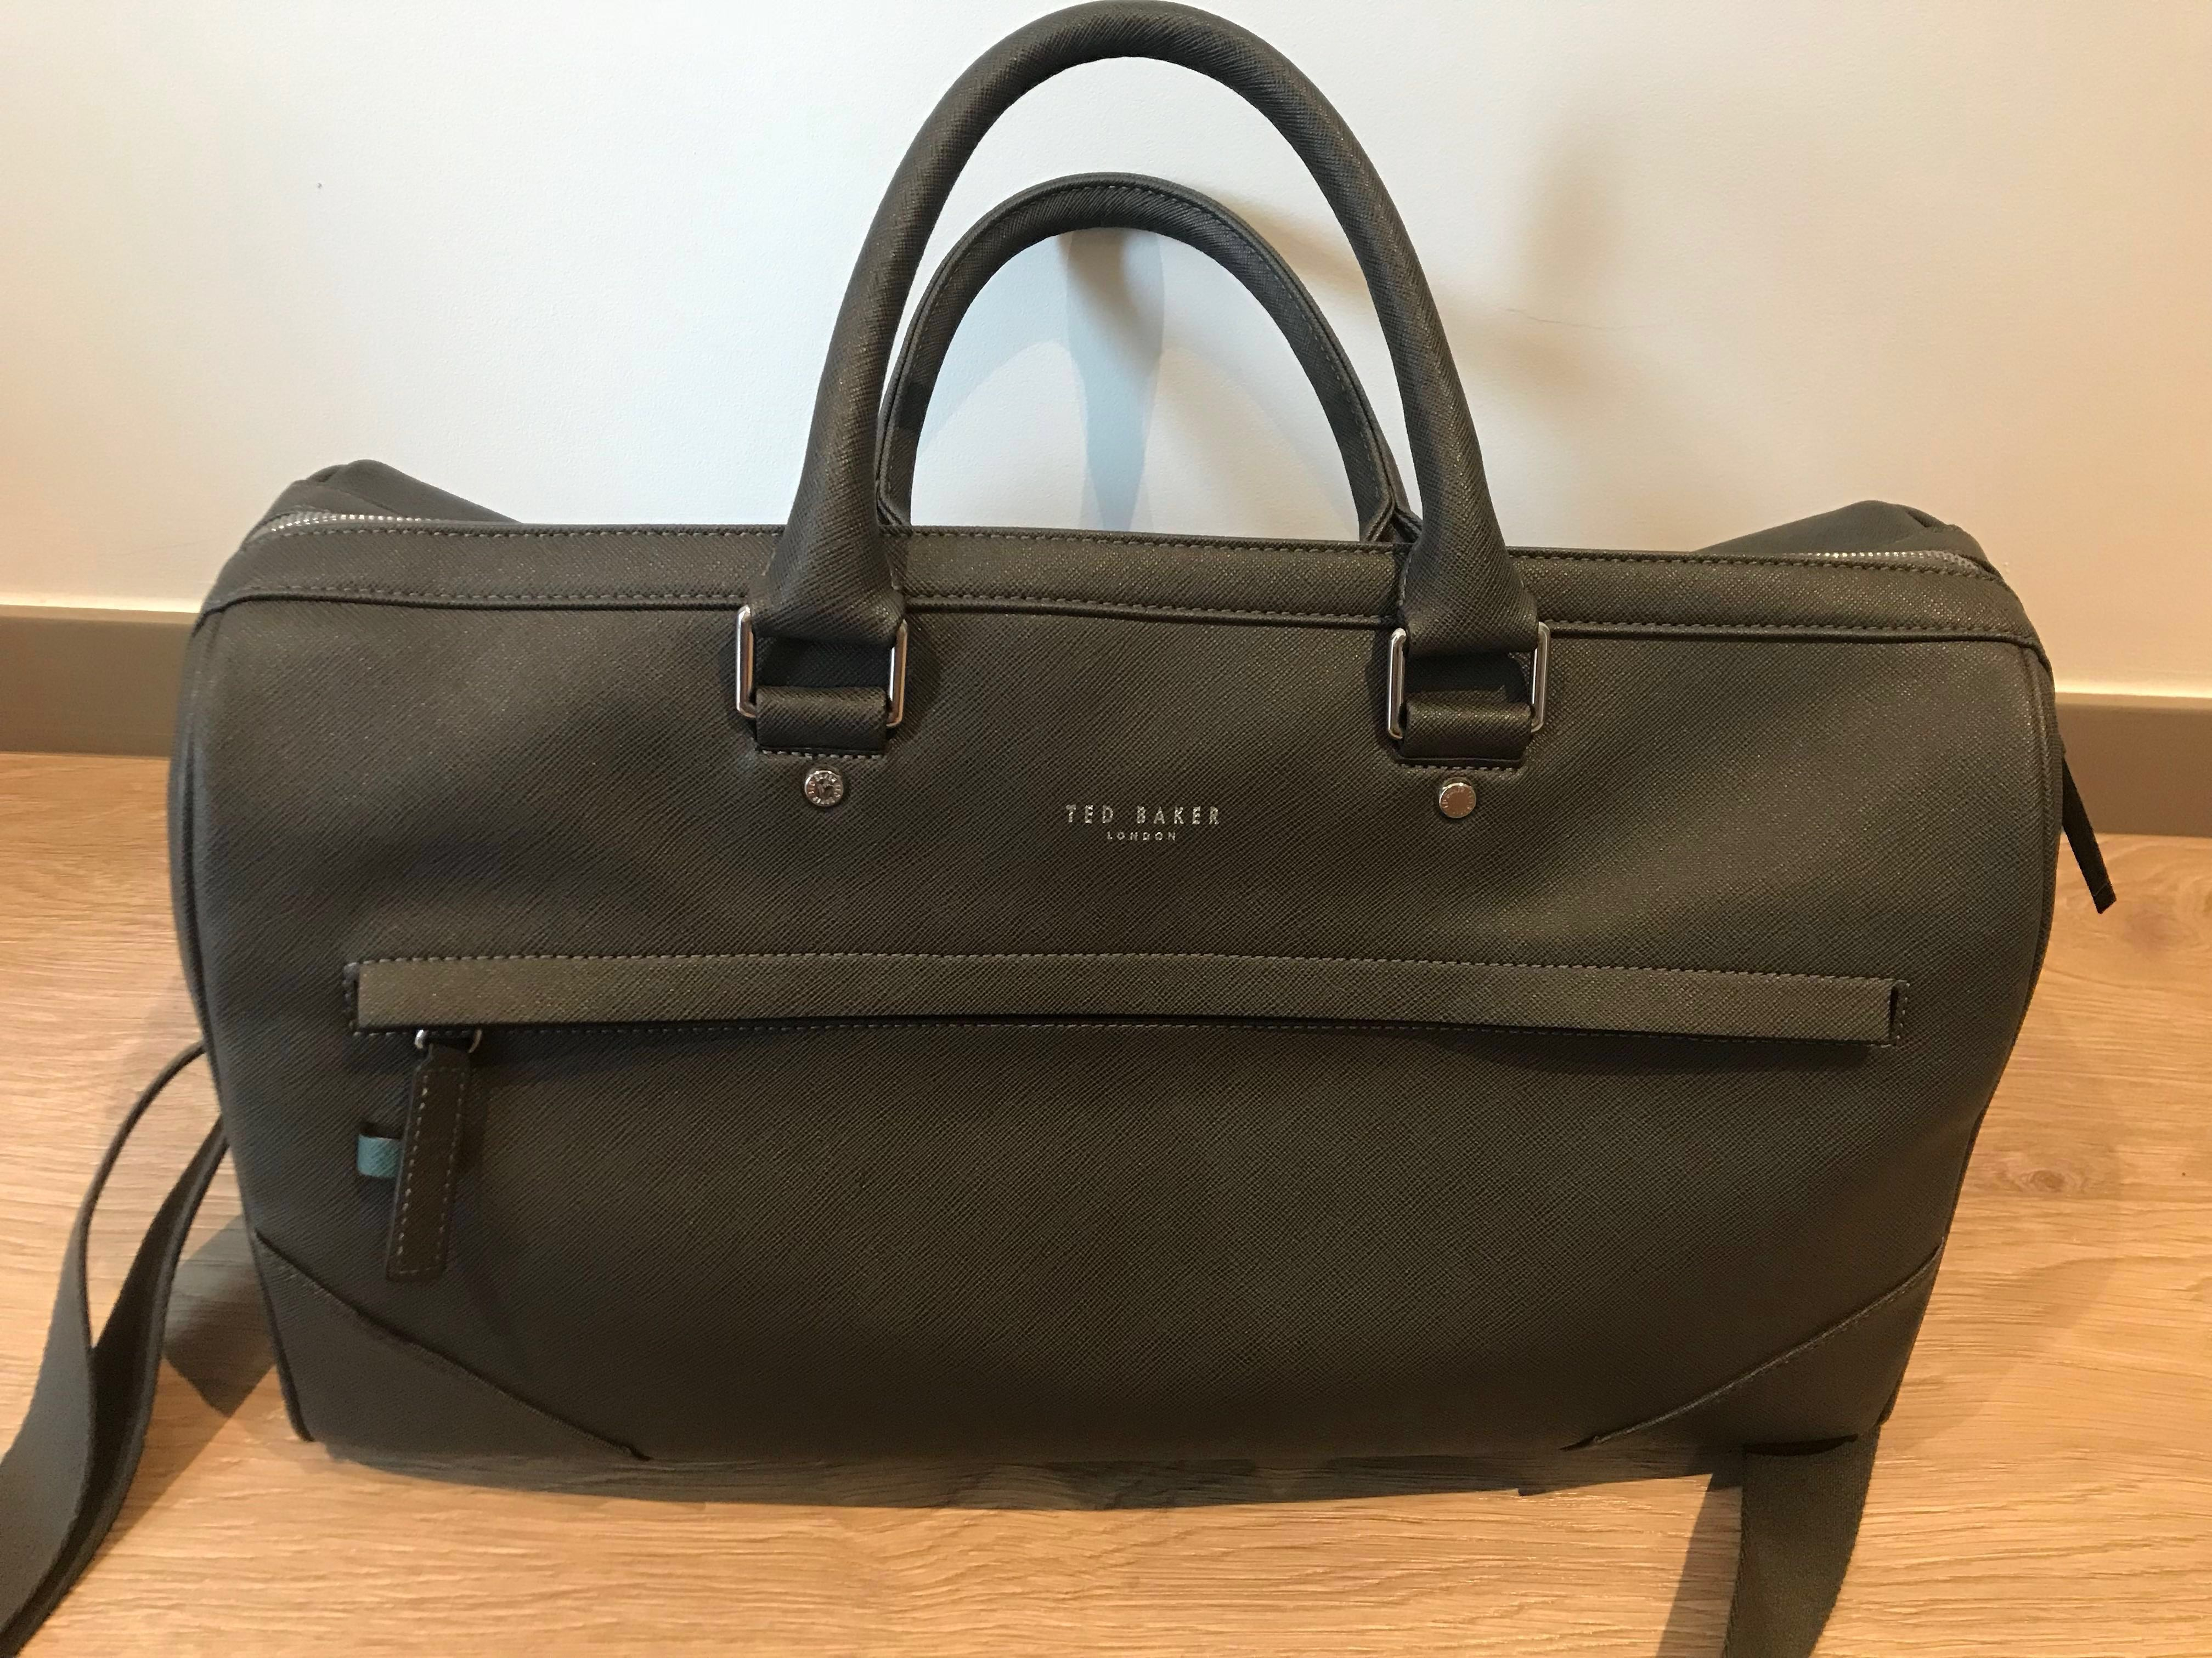 08b683c8ab9e Ted Baker Duffel bag in Charcoal Grey